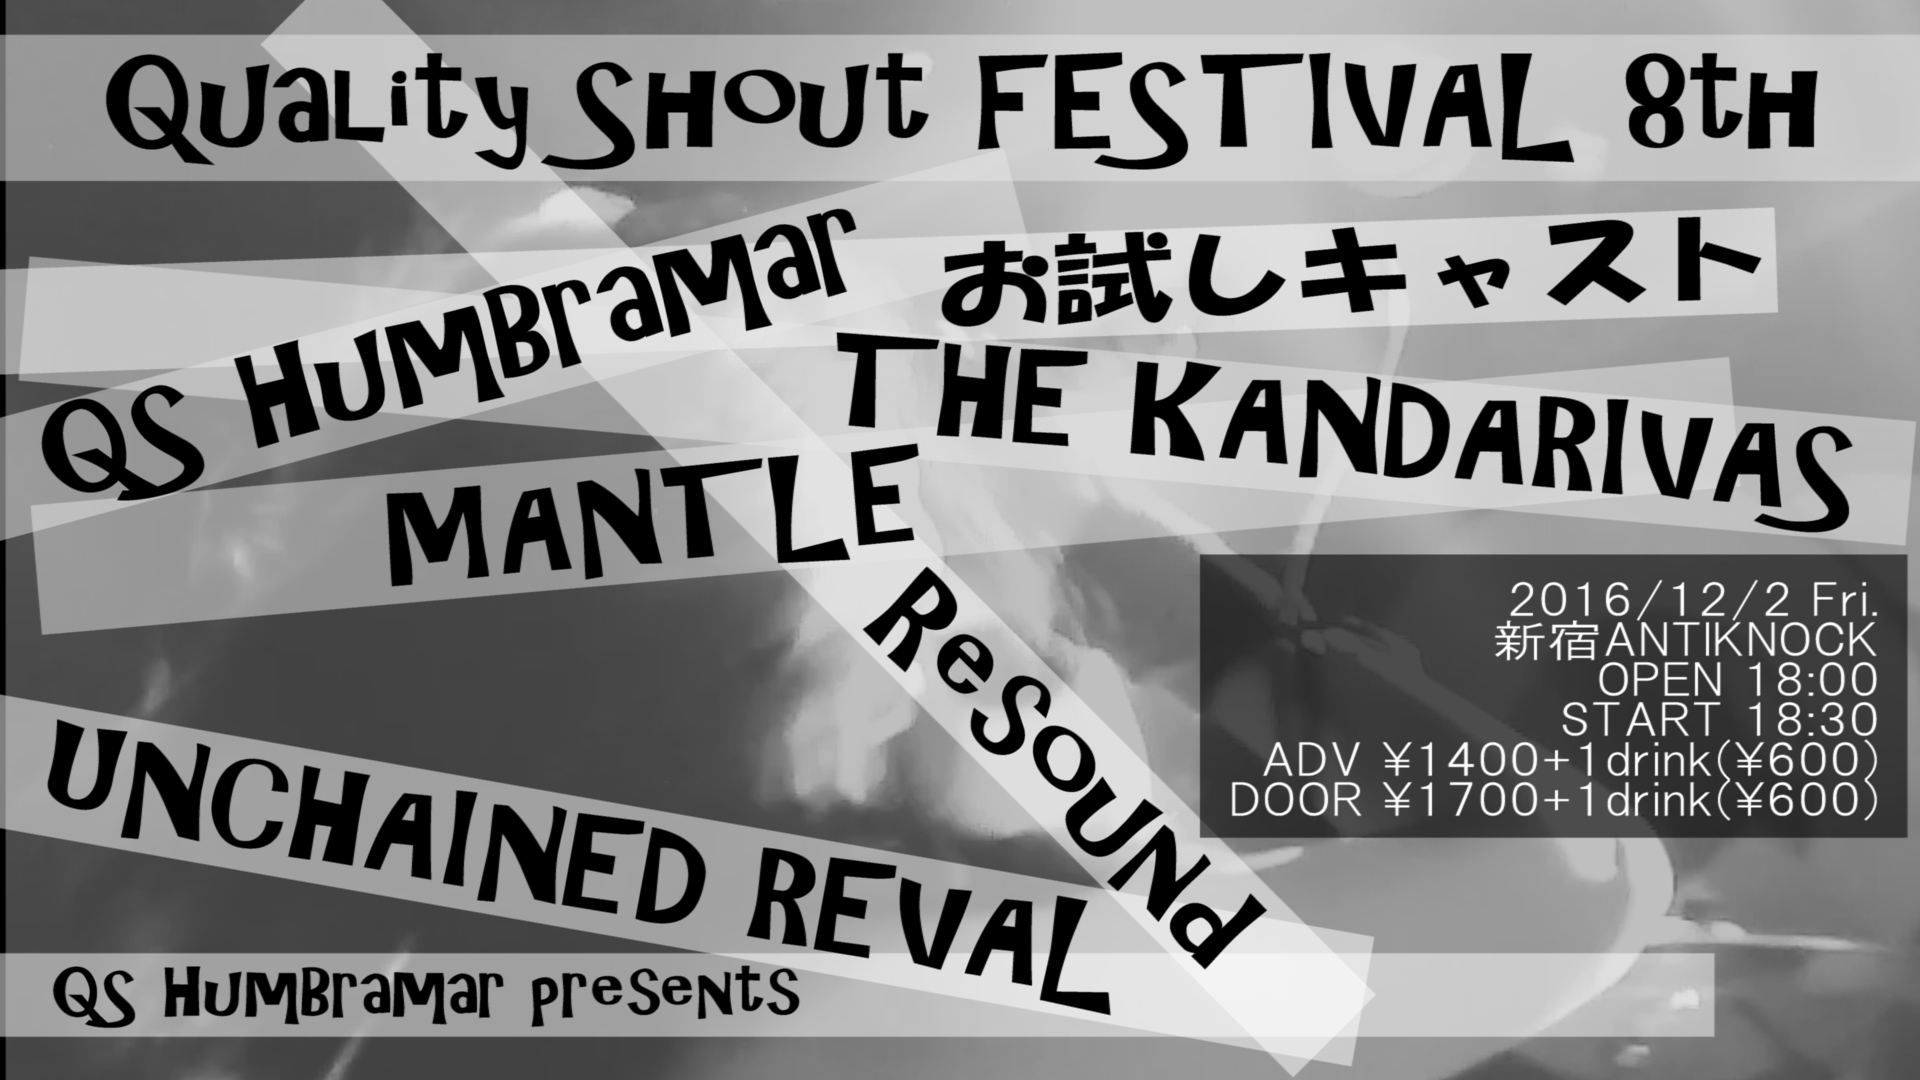 Quality Shout FESTIVAL 8th